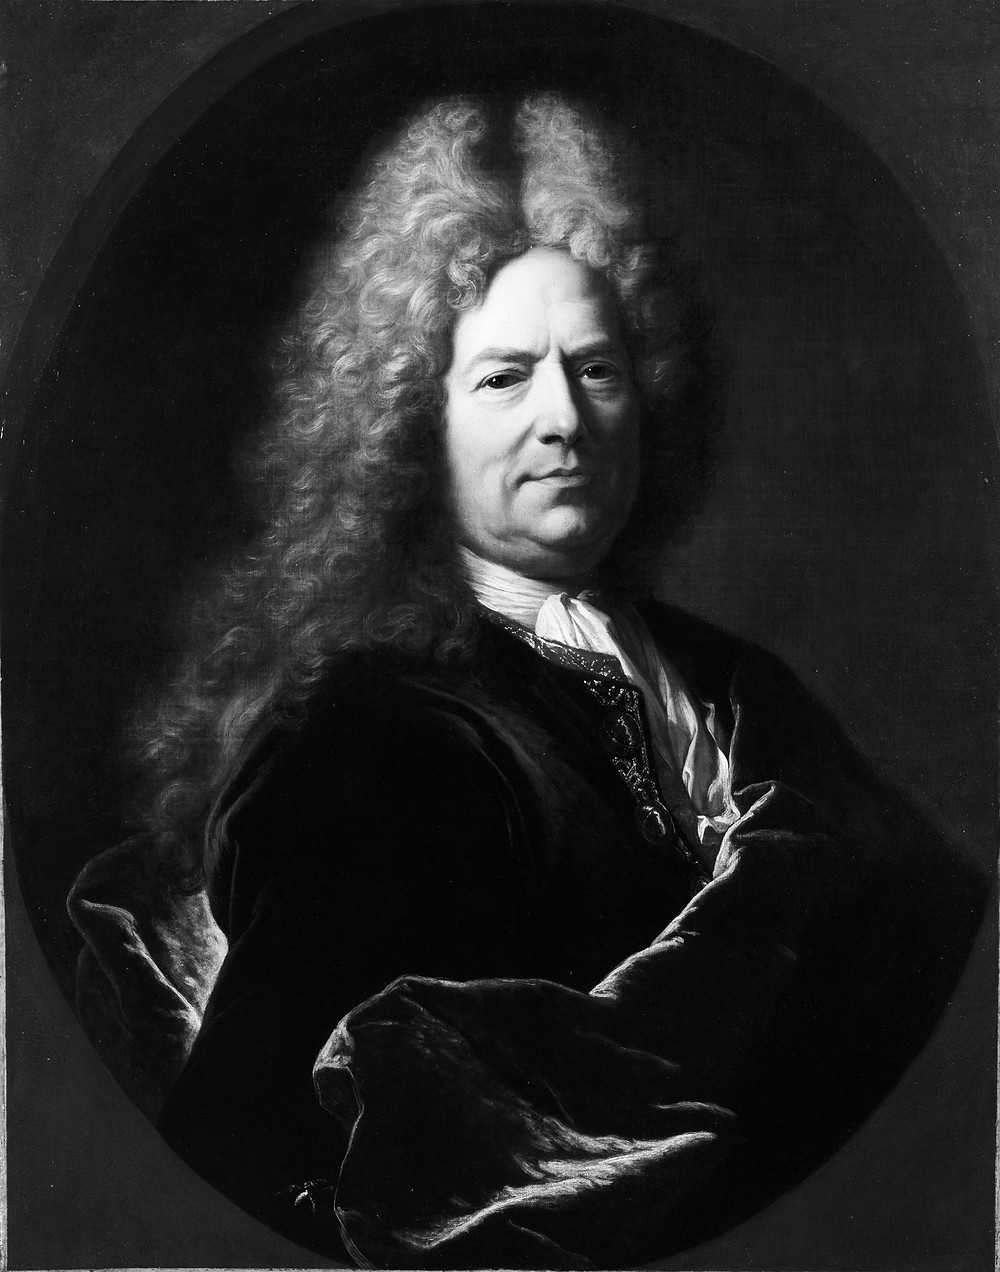 Hyacinthe Rigaud, Portrait d'homme inconnu, vers 1705-1715, Williamstown, The Sterling and Francine Clark Art Institute, inv. 953